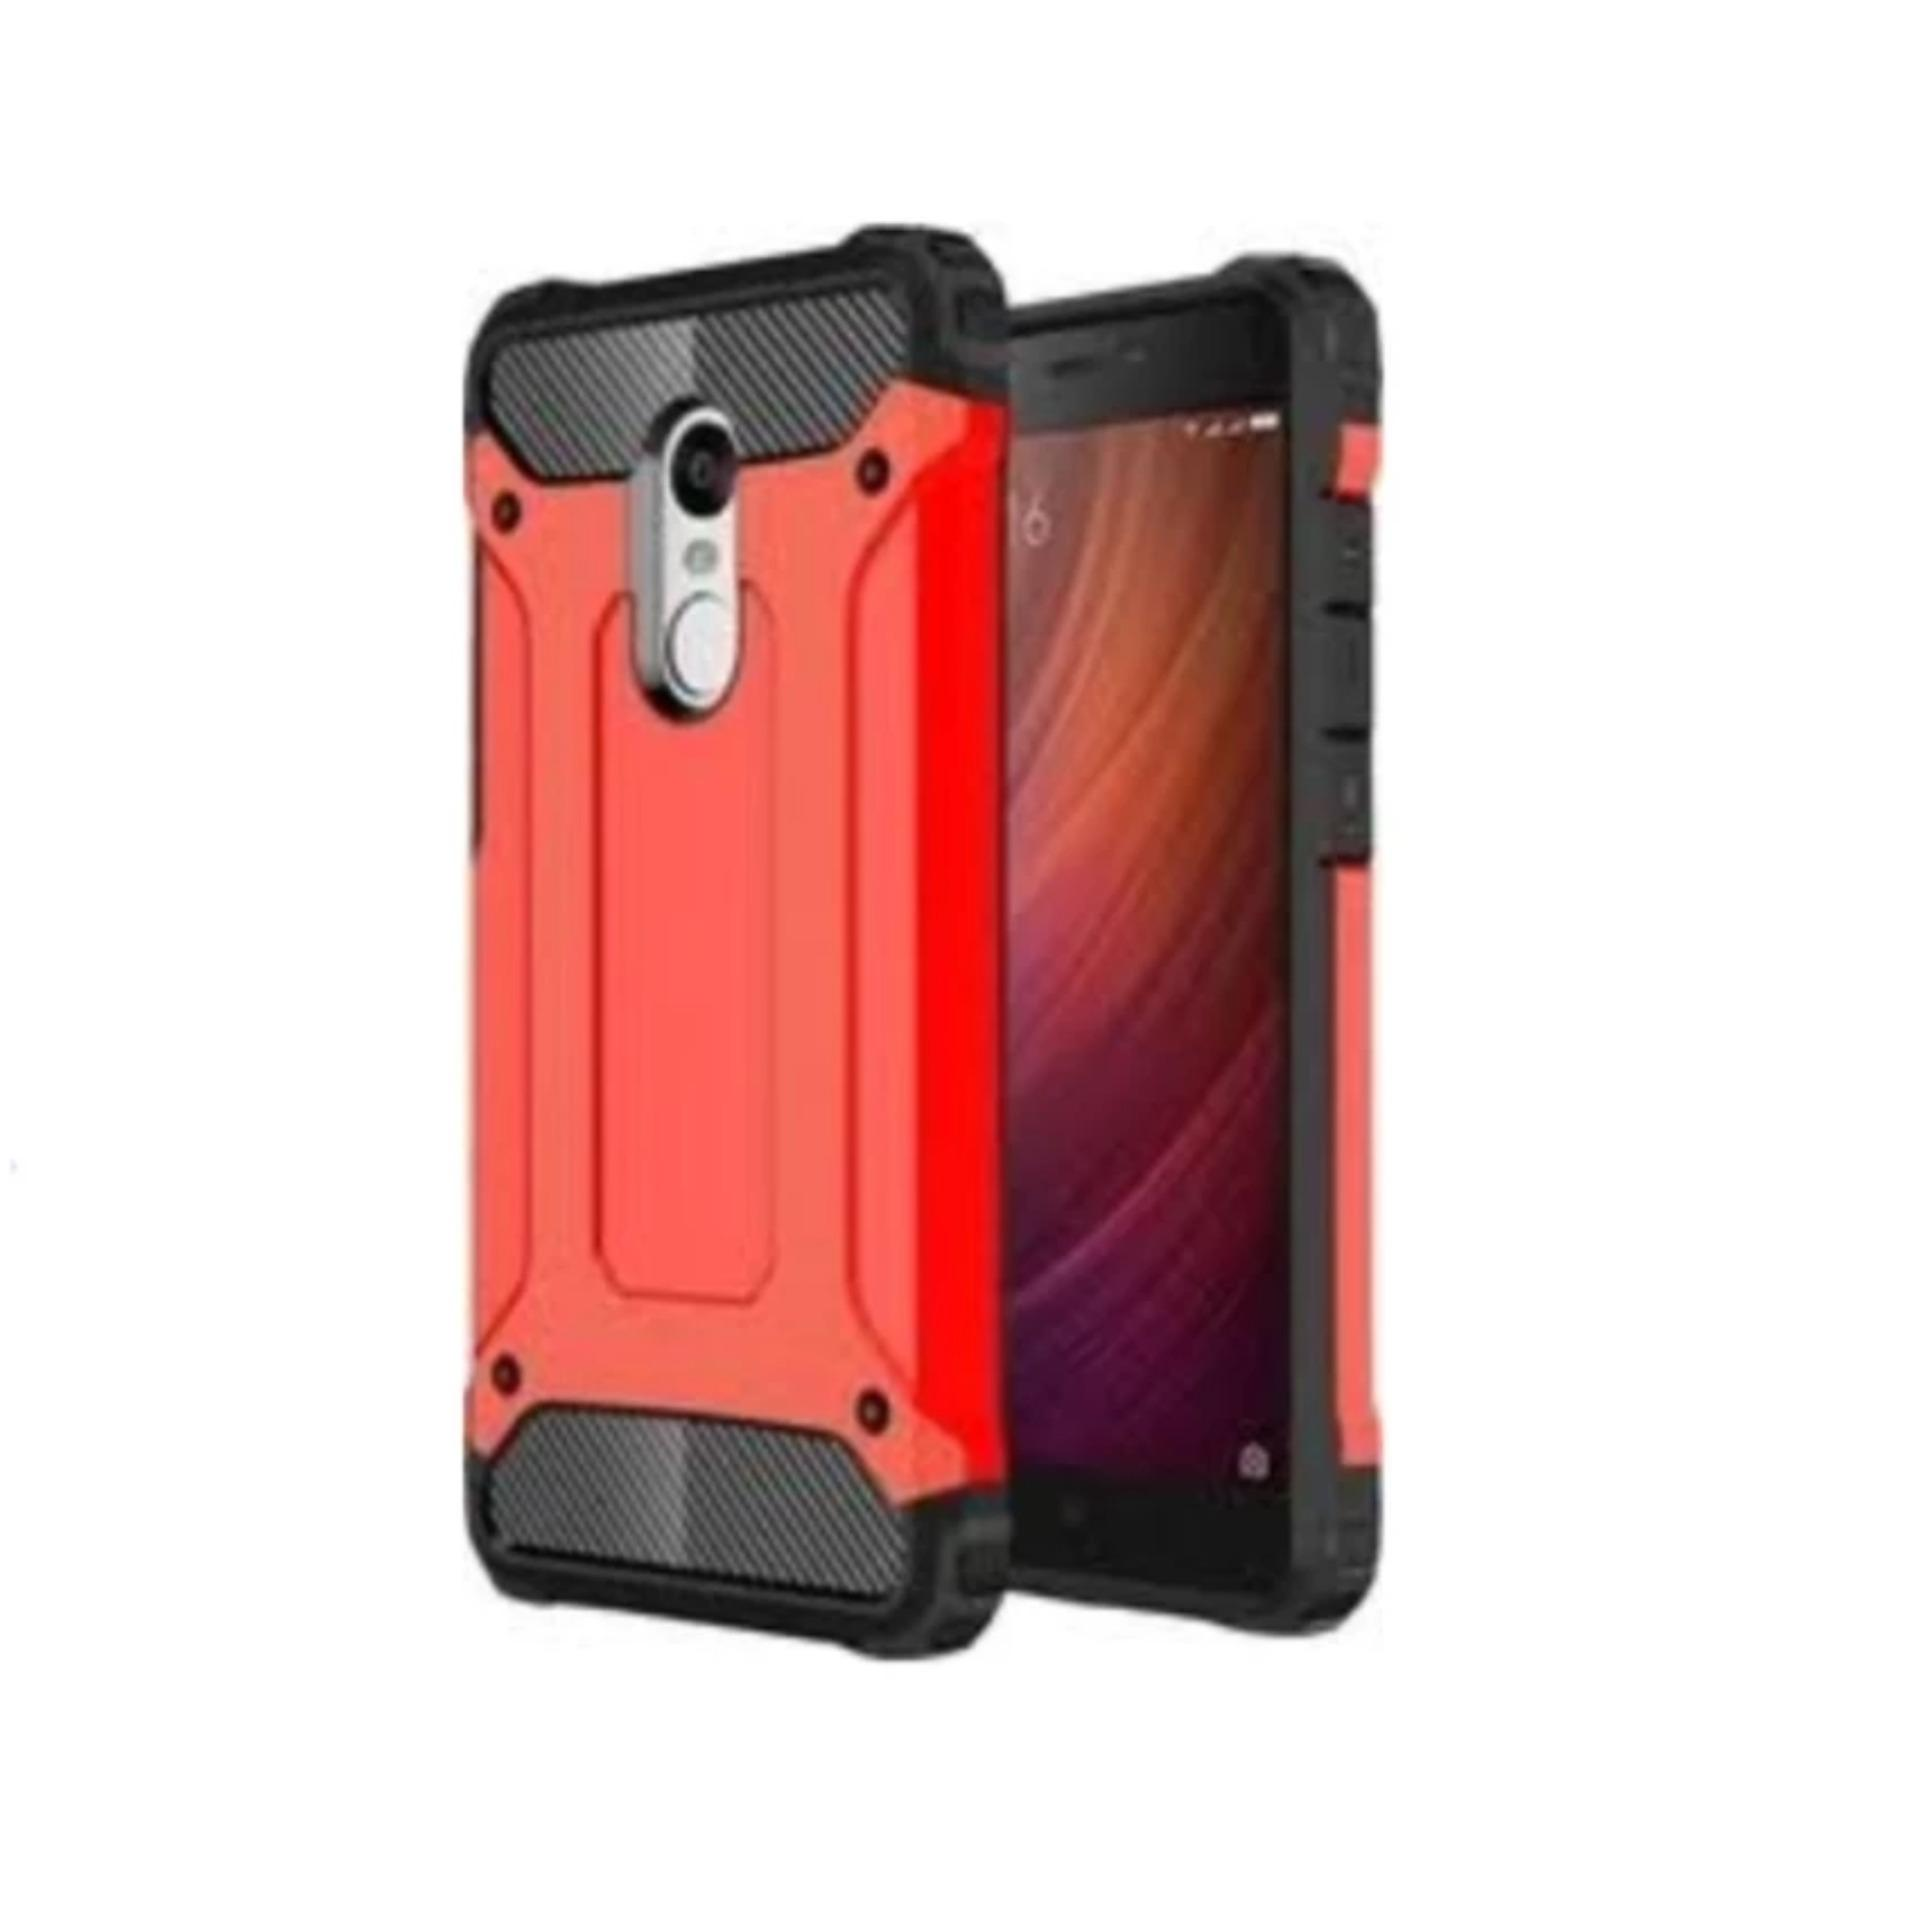 Casing Handphone Iron Robot Hardcase for Xiaomi Redmi Note 4x - ABS